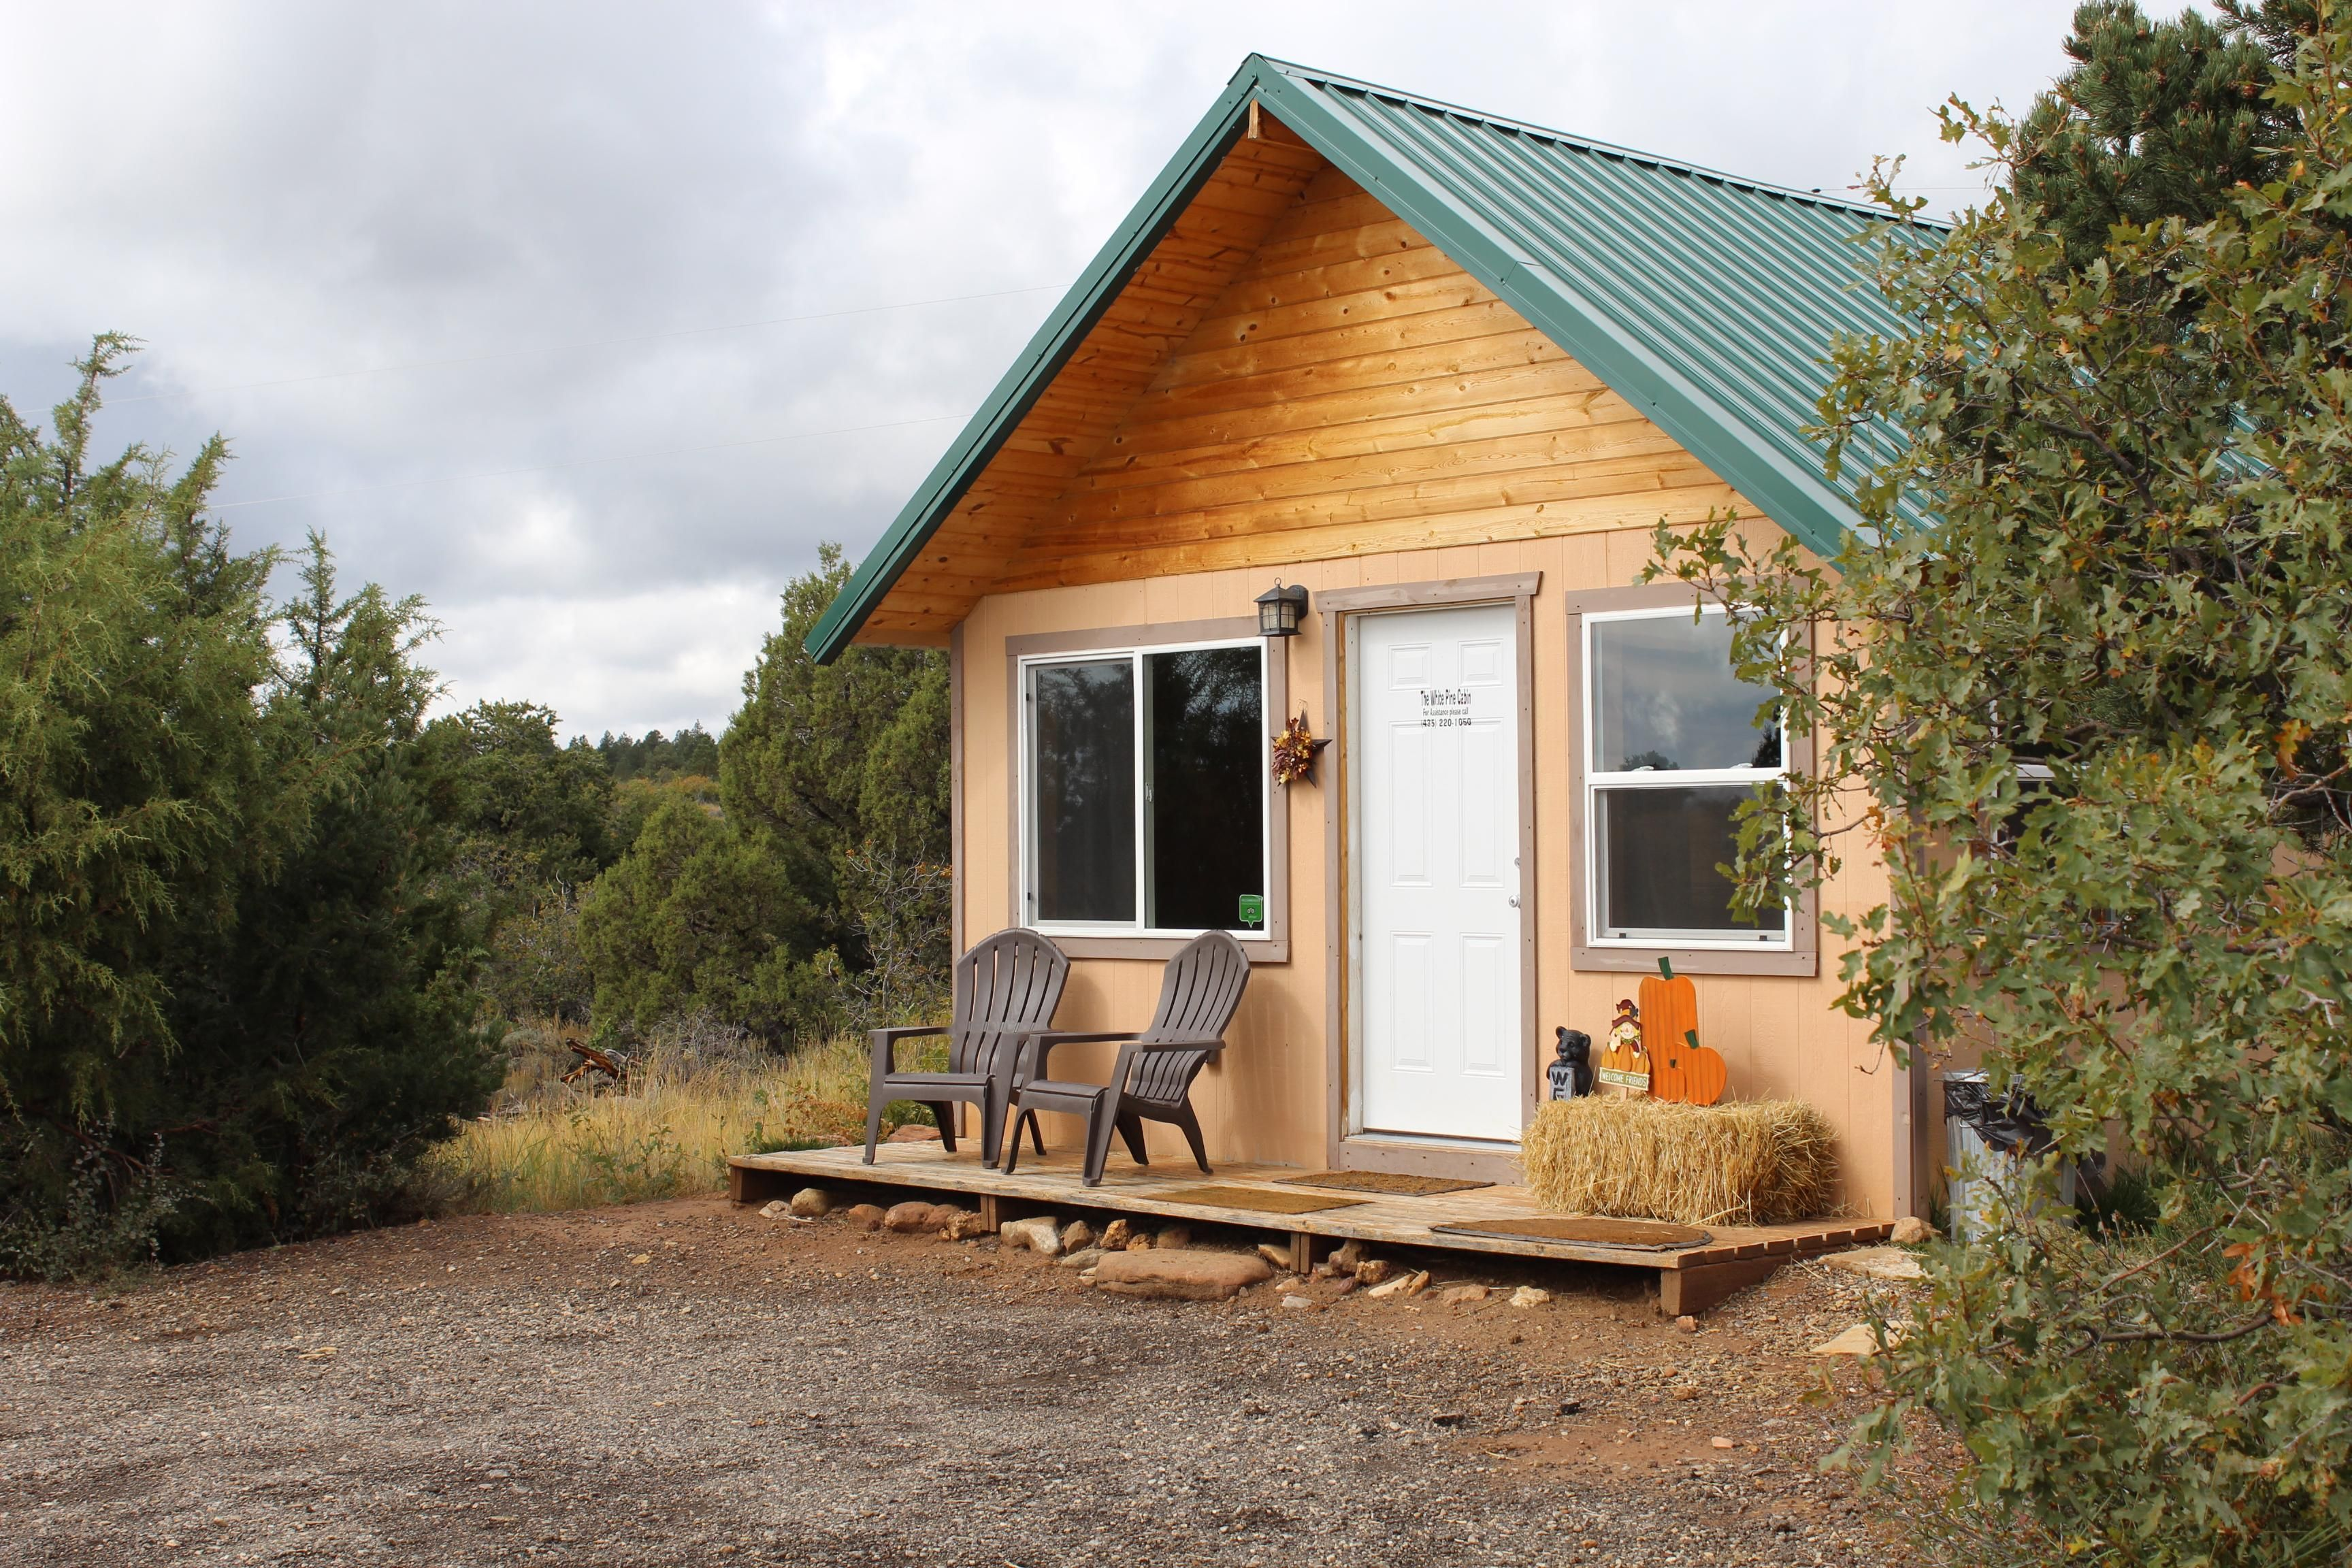 uinta sale near fish mountains county utah real estate wasatch for summit southern cabins lake in the